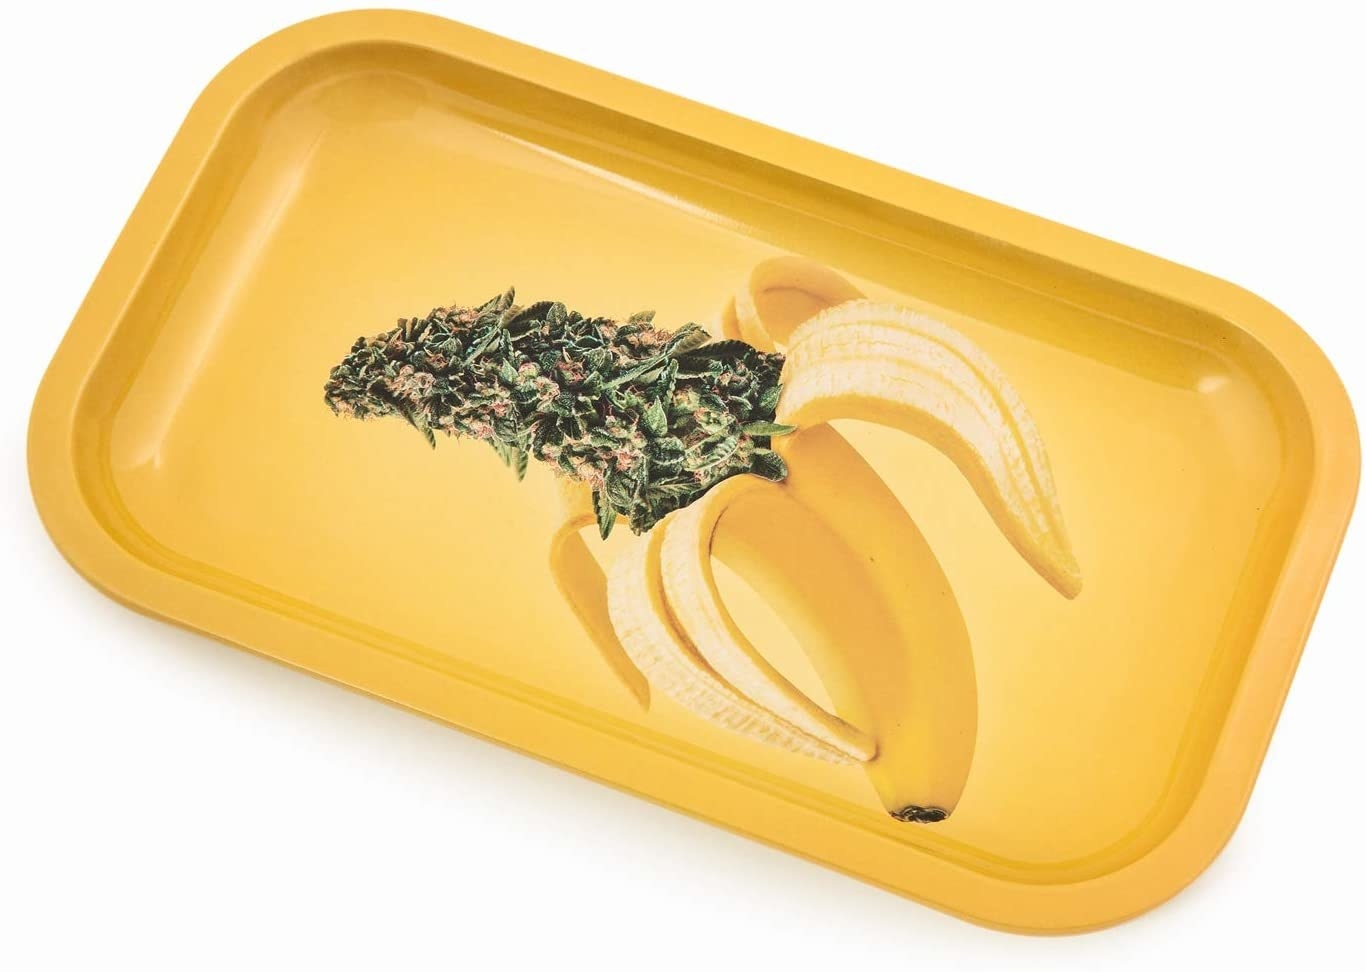 A metal rolling tray with a photo of a banana peeling with weed inside